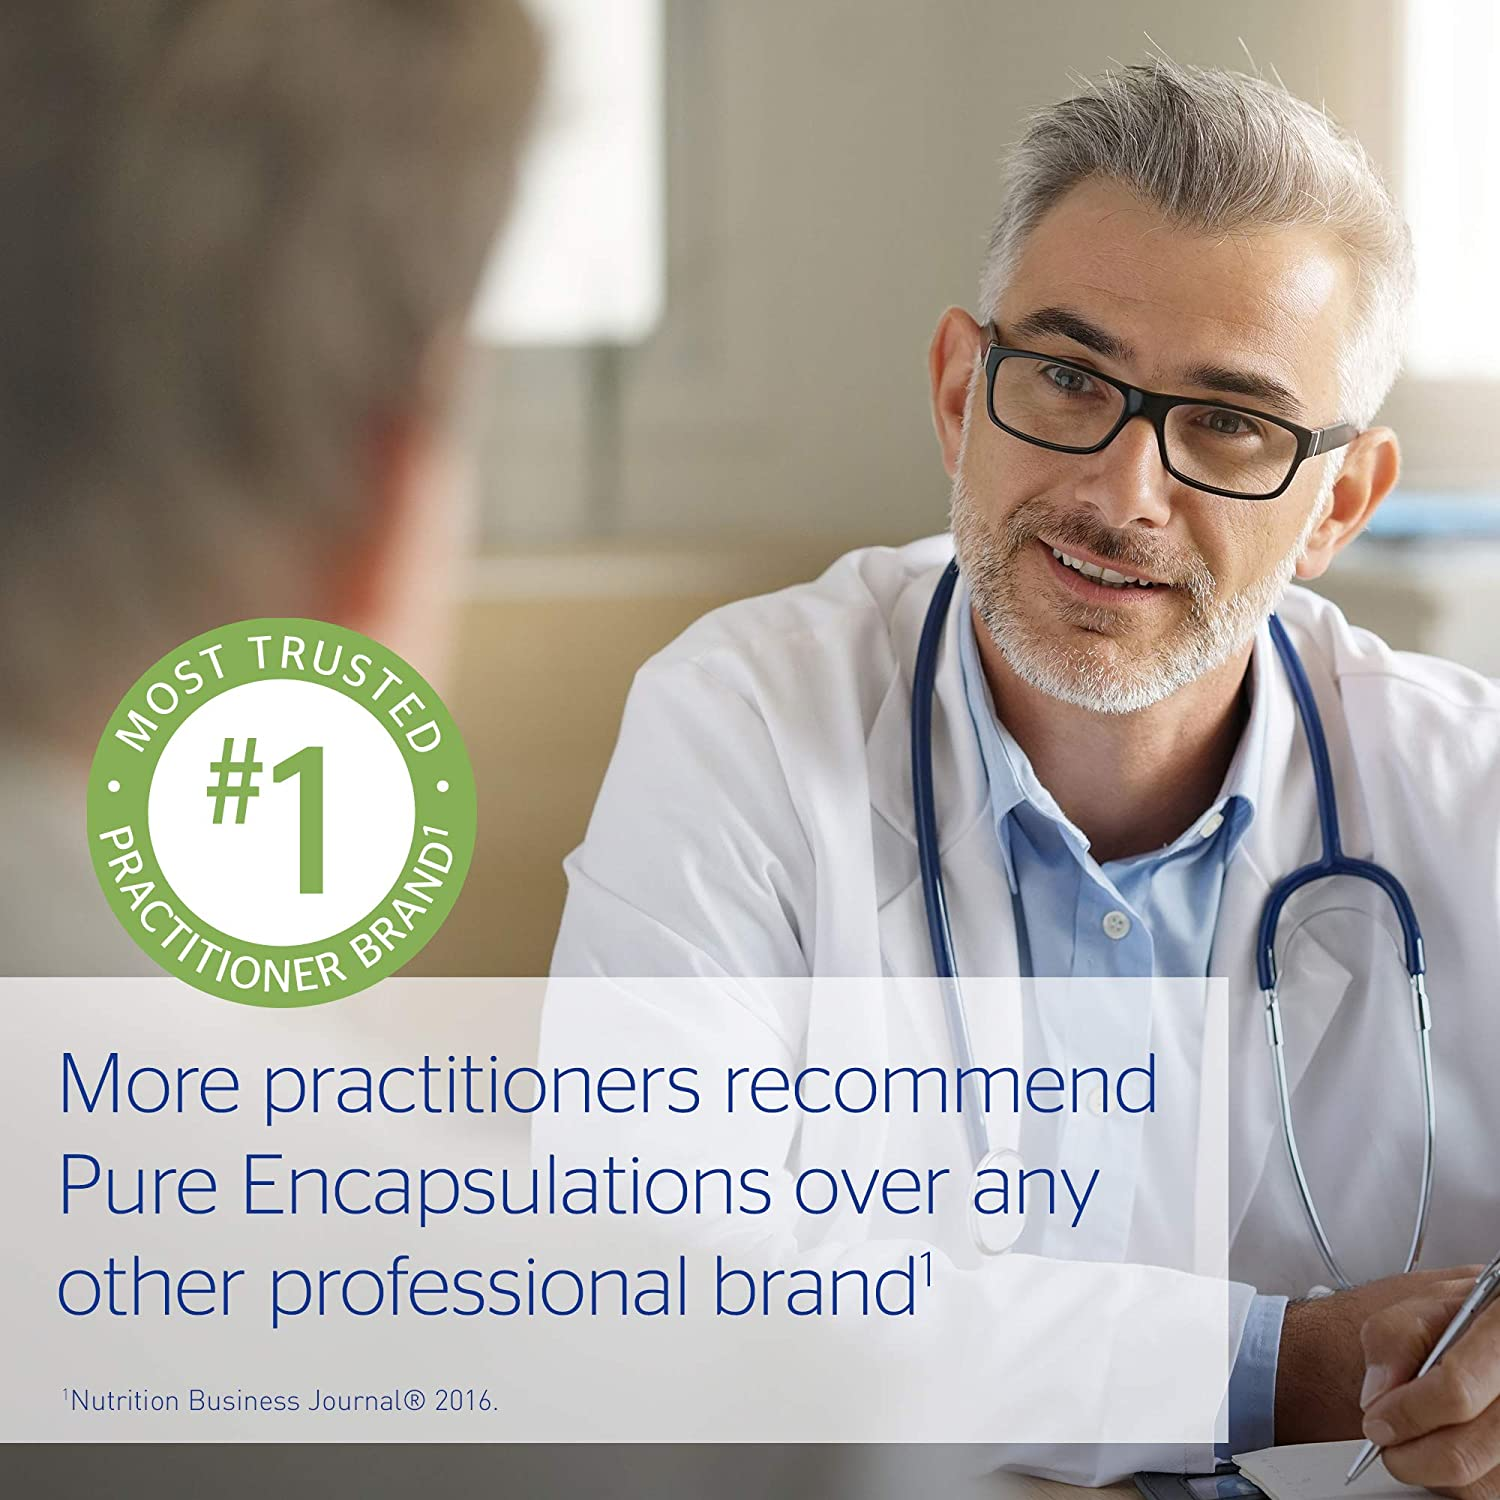 Pure Encapsulations - Green Tea Extract - Decaffeinated - Hypoallergenic Antioxidant Support for All Cells in The Body* - 60 Capsules